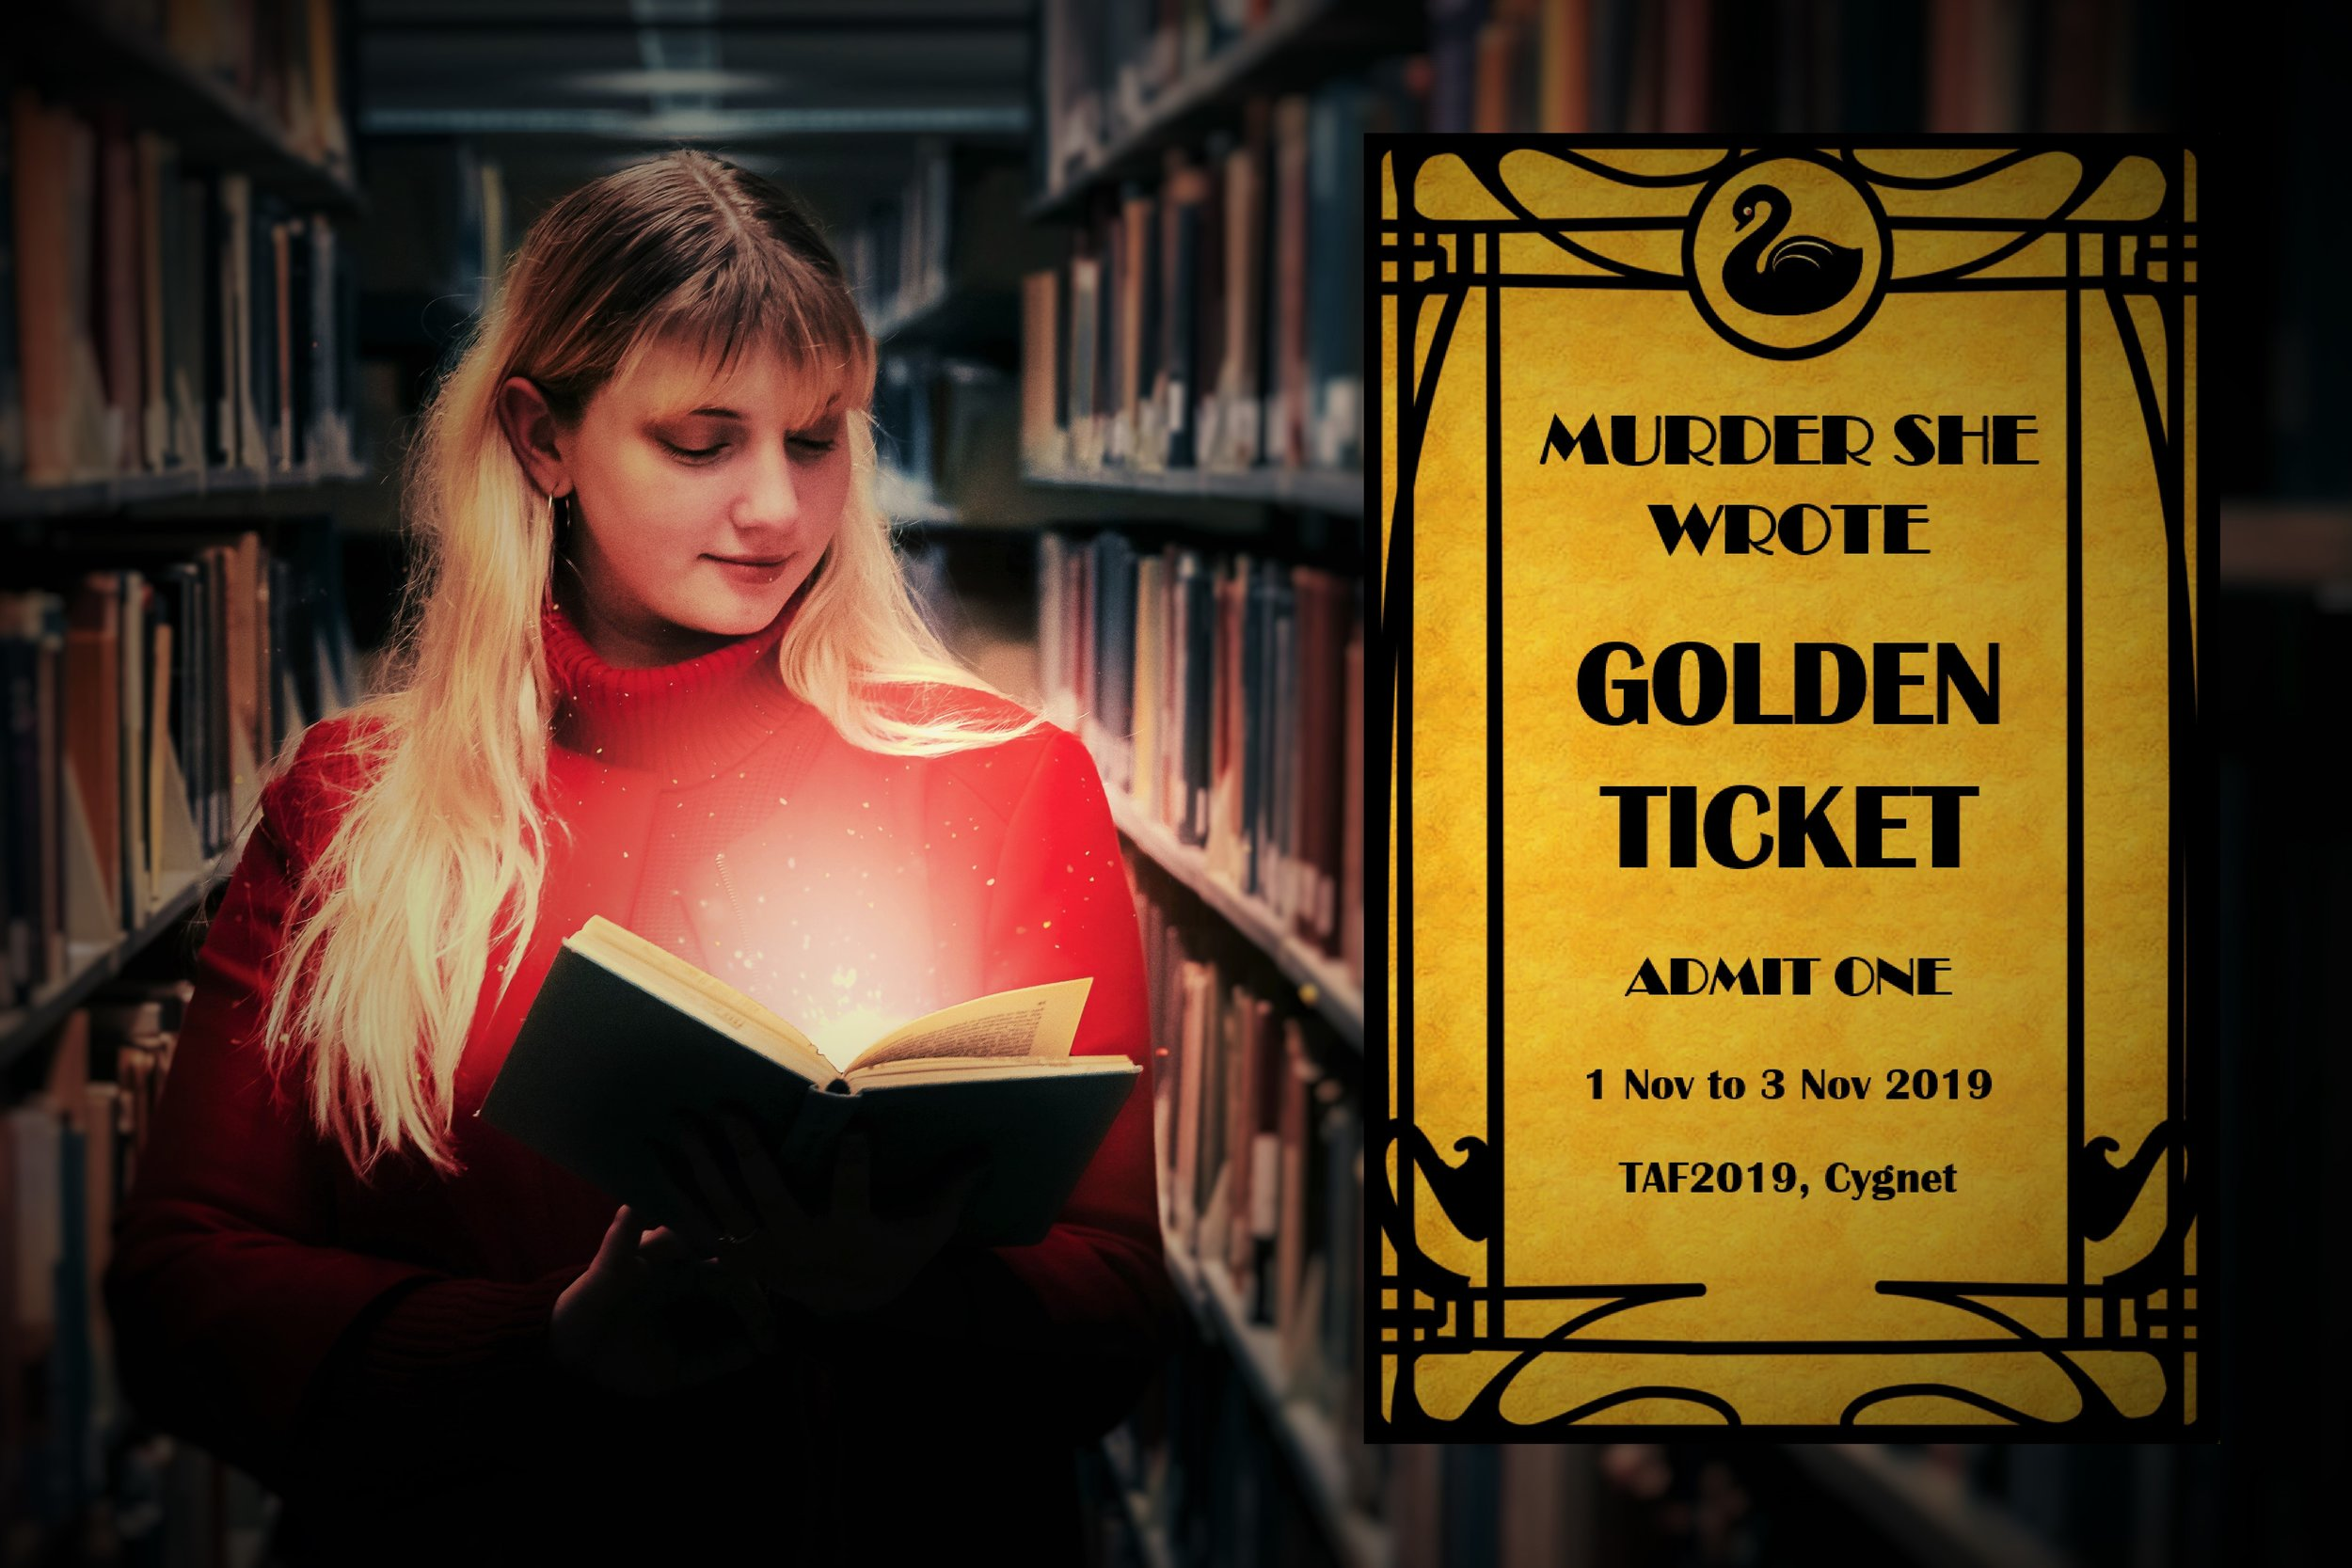 The first 80 GOLDEN TICKETS include a seat at the Murder Mystery Party!